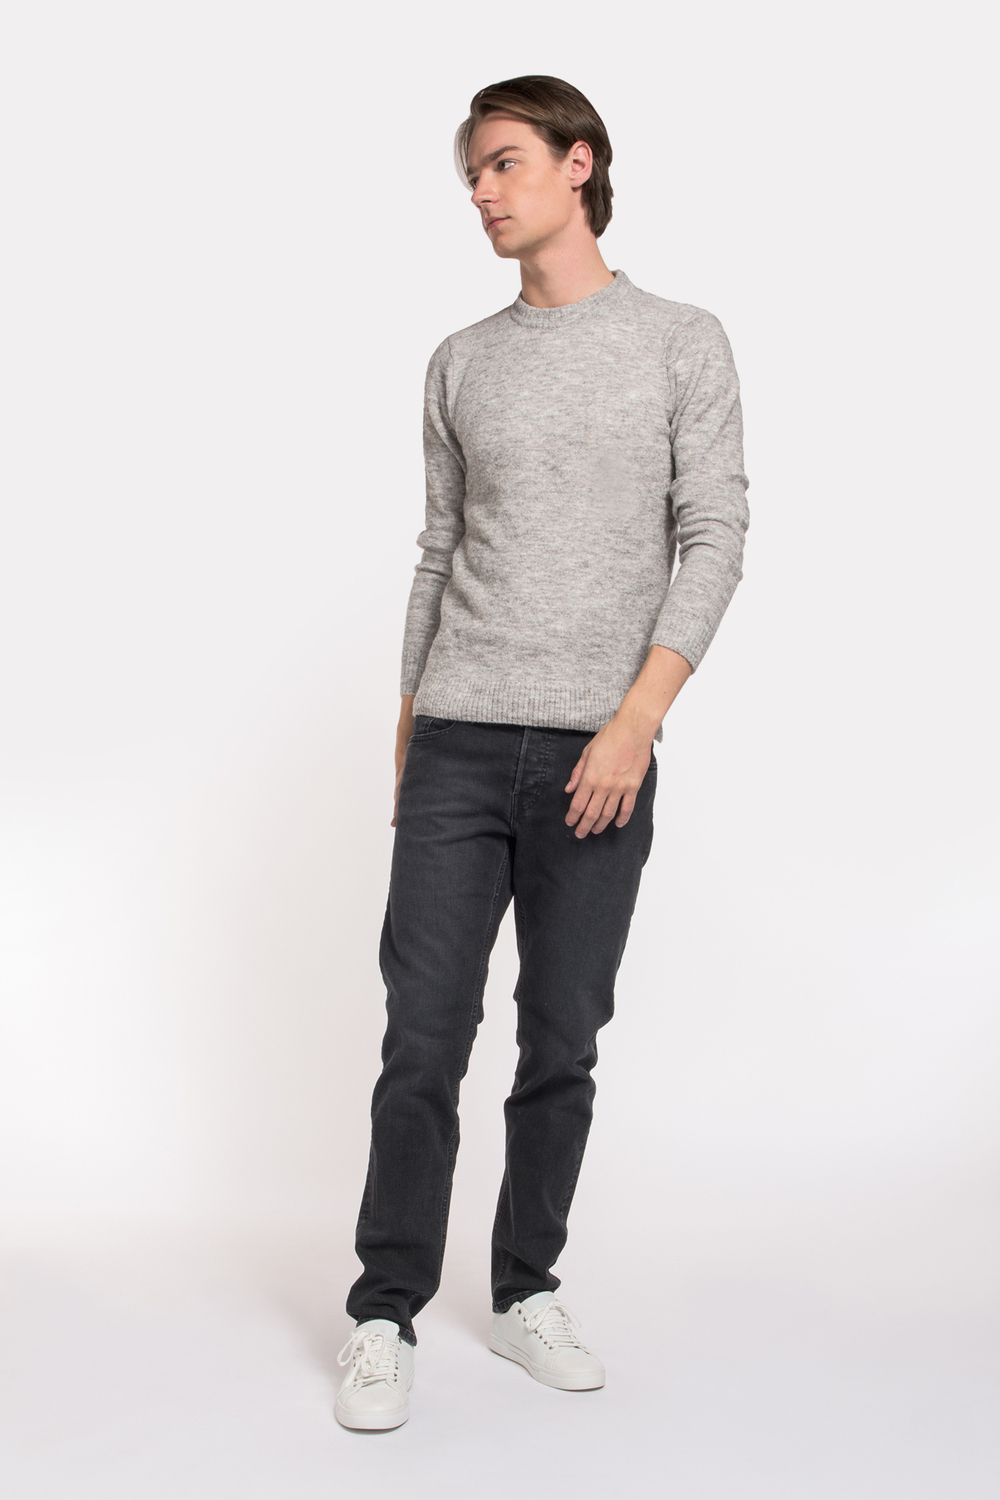 MUD_Jeans_regular_dunn_stone_grey_5.jpg